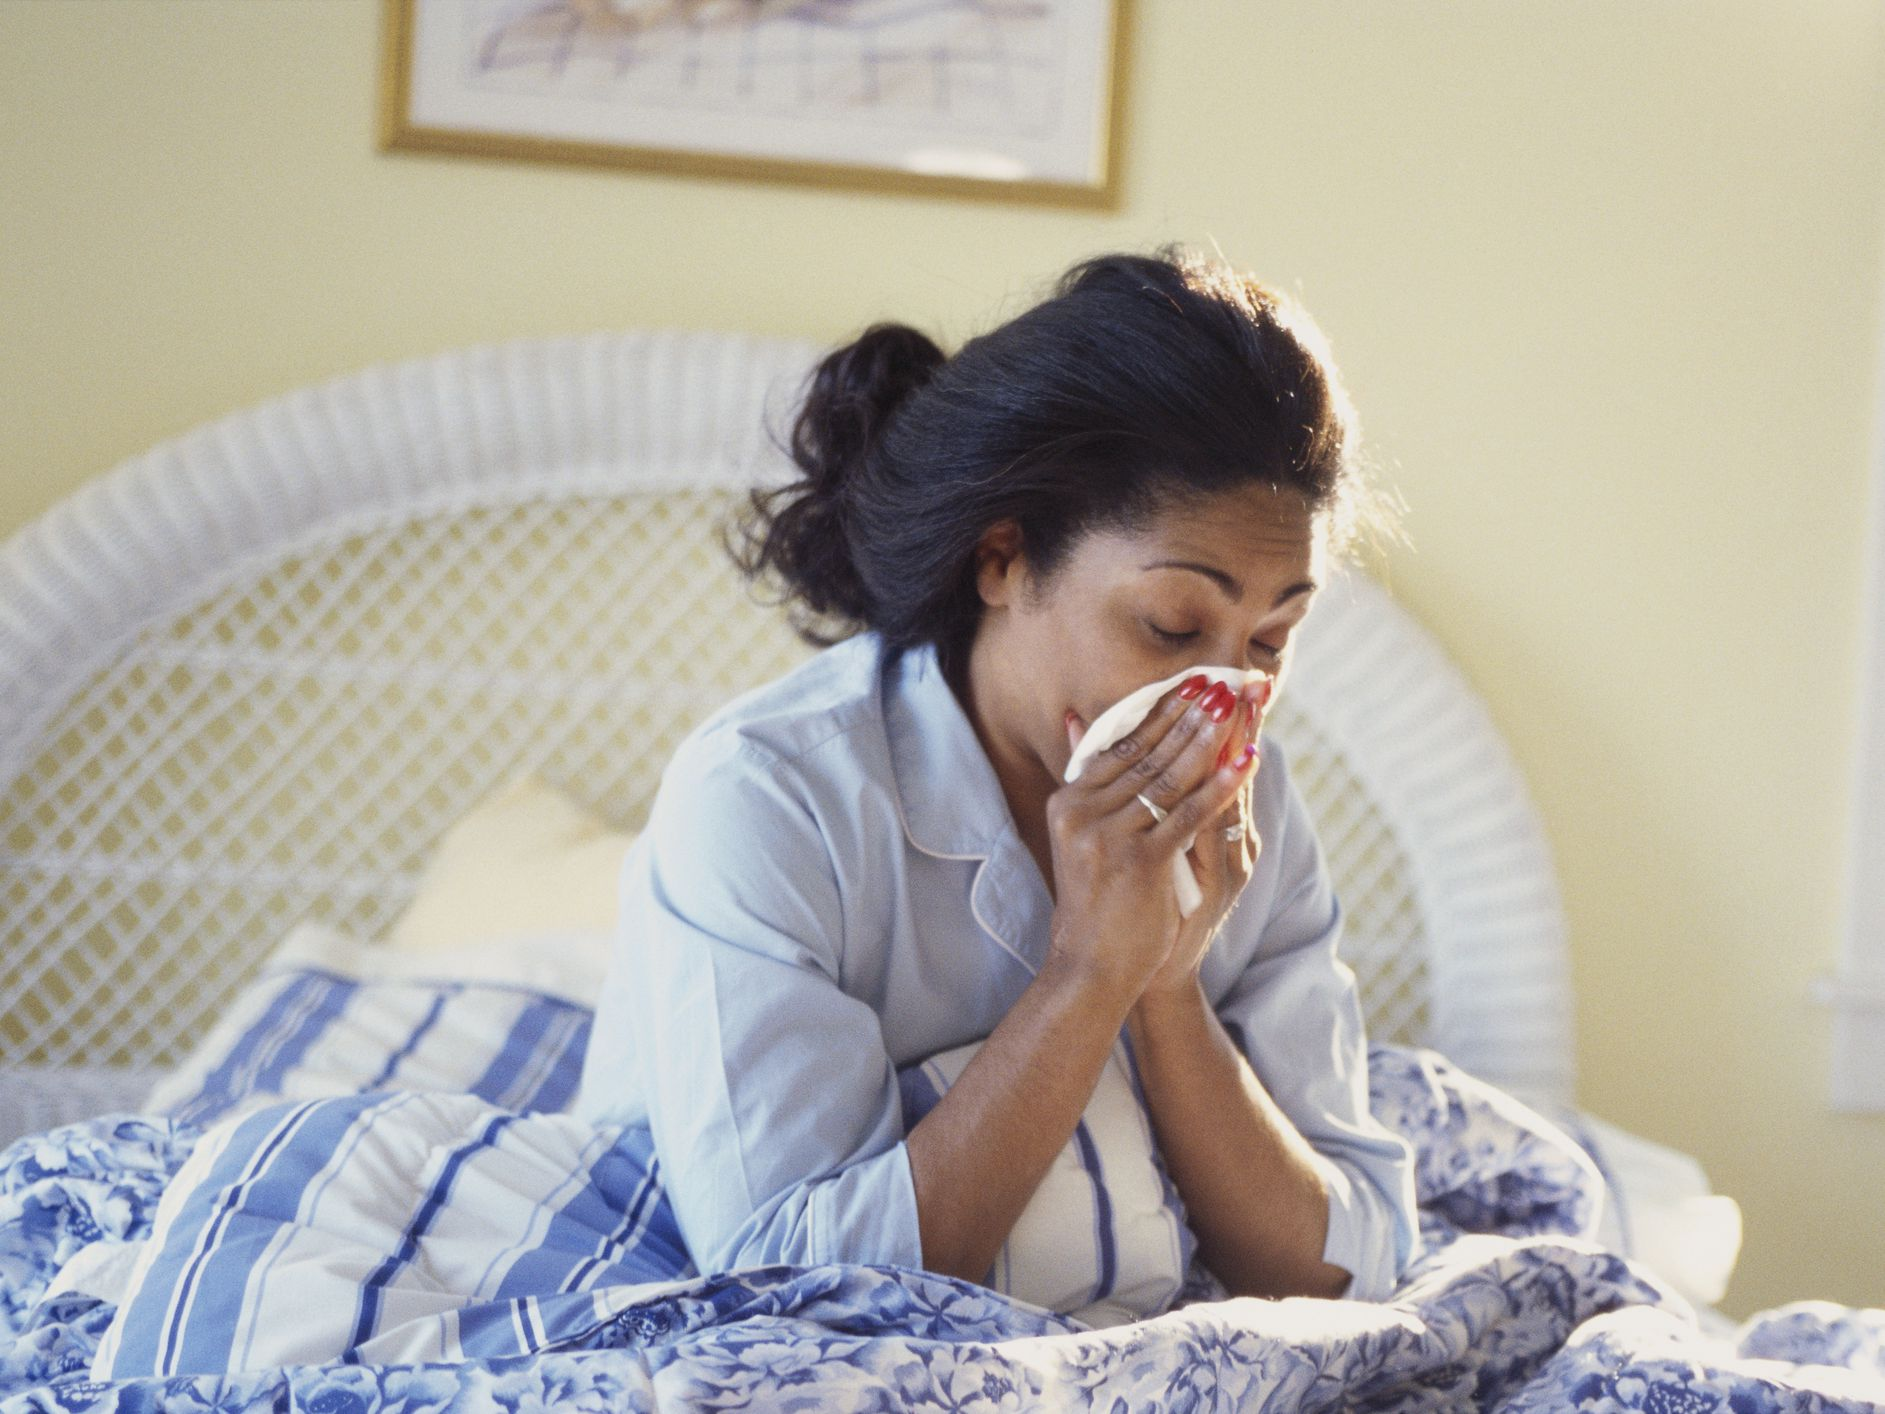 How to Treat Cold and Flu Symptoms If You Have Diabetes